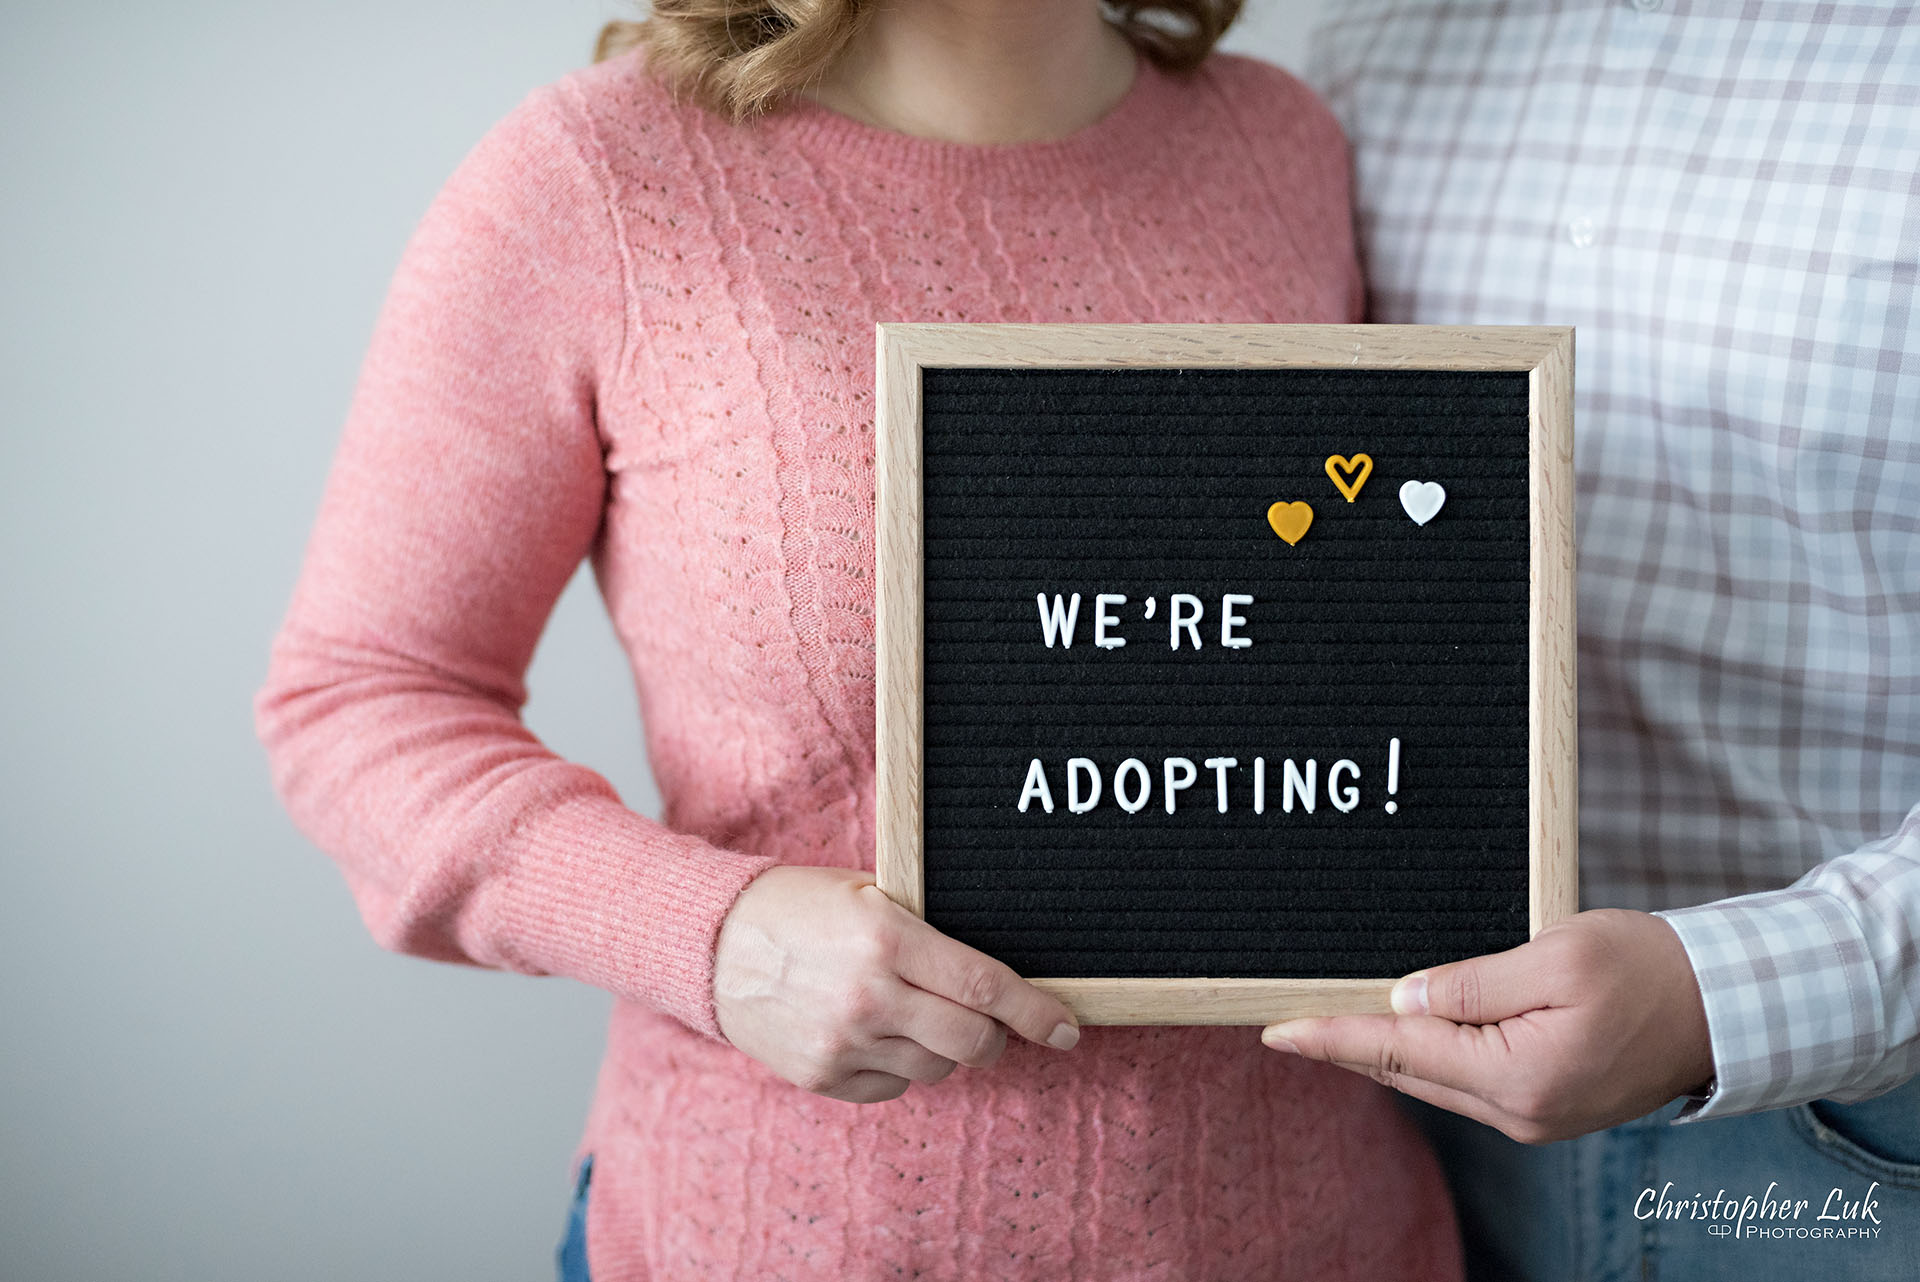 Christopher Luk Toronto Markham Family Adoption LifeBook Photographer Pictures Photos Children Session Parents We're Adopting Letter Board Sign Landscape